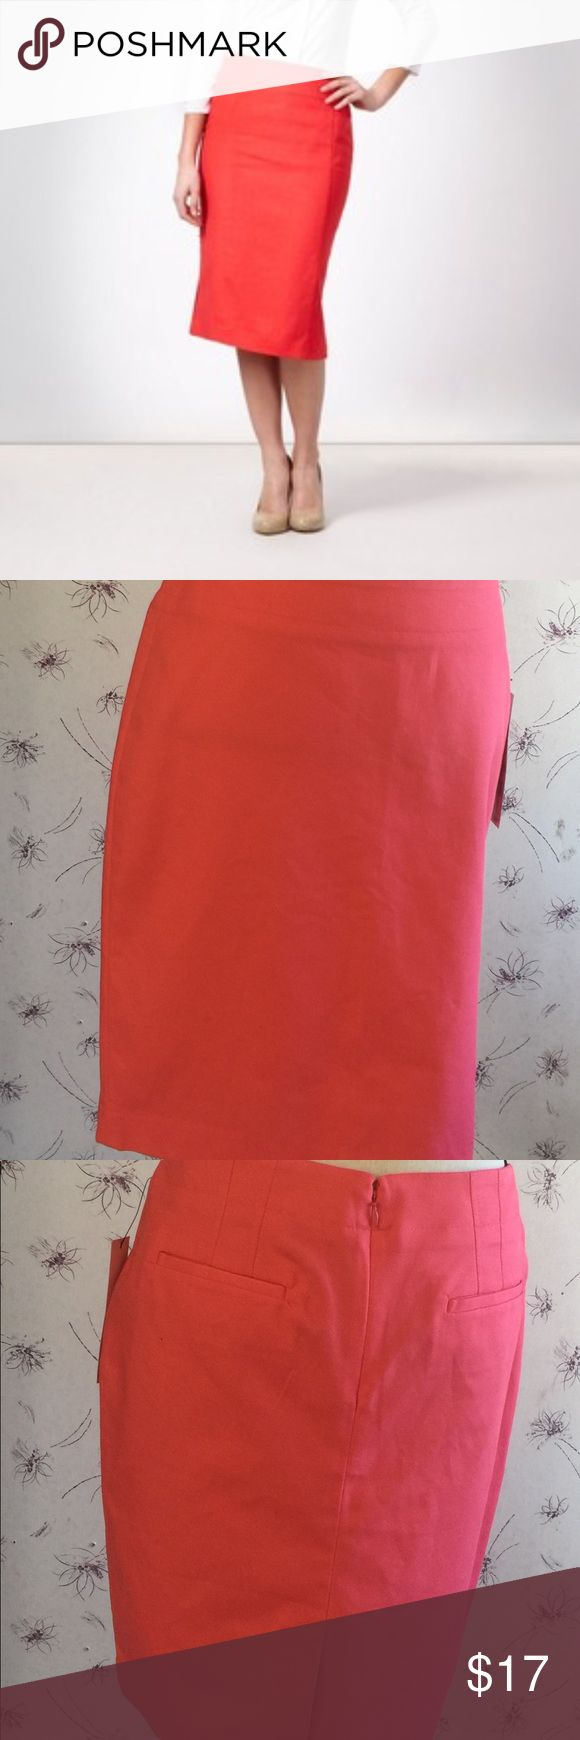 🛍NWT! Retail $58 Rafaella Coral Pencil Skirt🛍6 Brand new with tag! Retails for $58. Get started on your spring wardrobe with this coral colored pencil skirt by Rafaella. It features a hidden zipper, two back pockets and a small split in the back. Very cute and versatile skirt. Size 6. Fast shipper!!💃🏼💃🏼 Rafaella Skirts Pencil